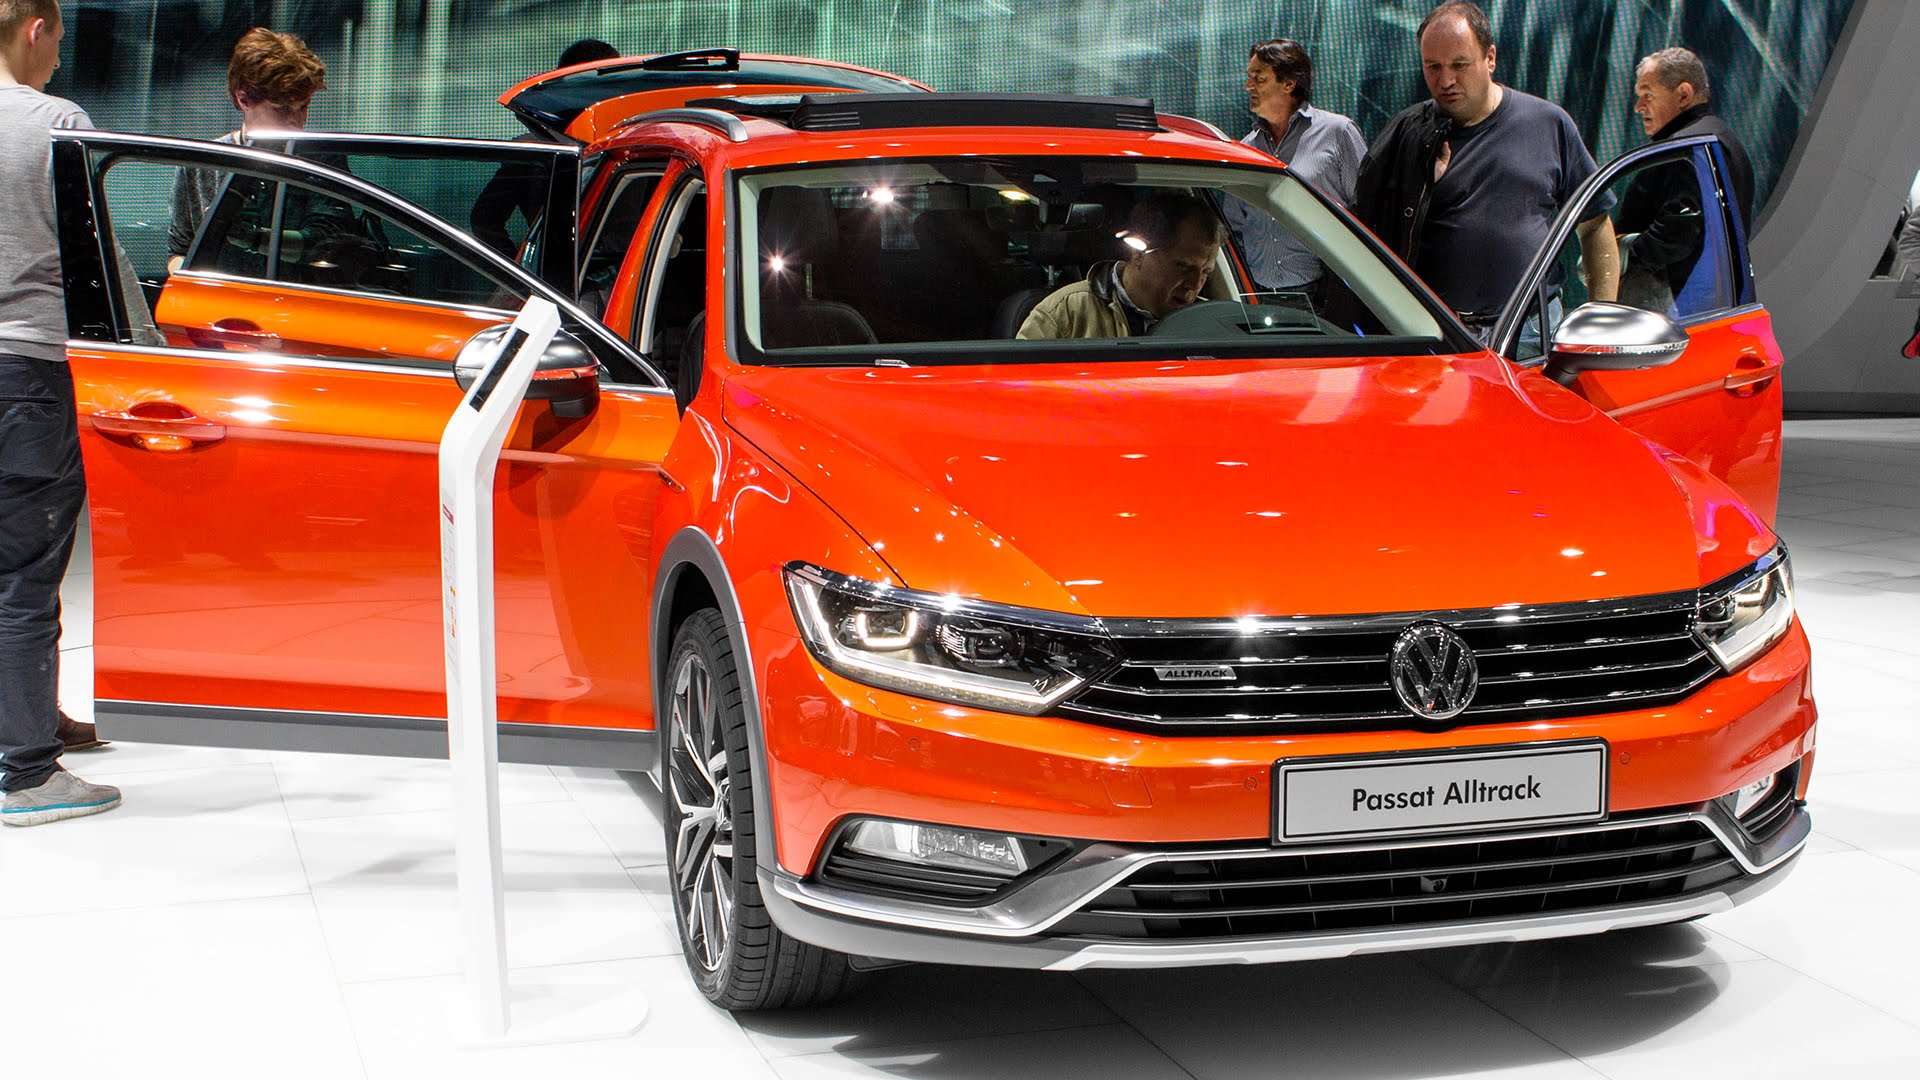 Volkswagen Passat B8 Alltrack Full hd wallpapers